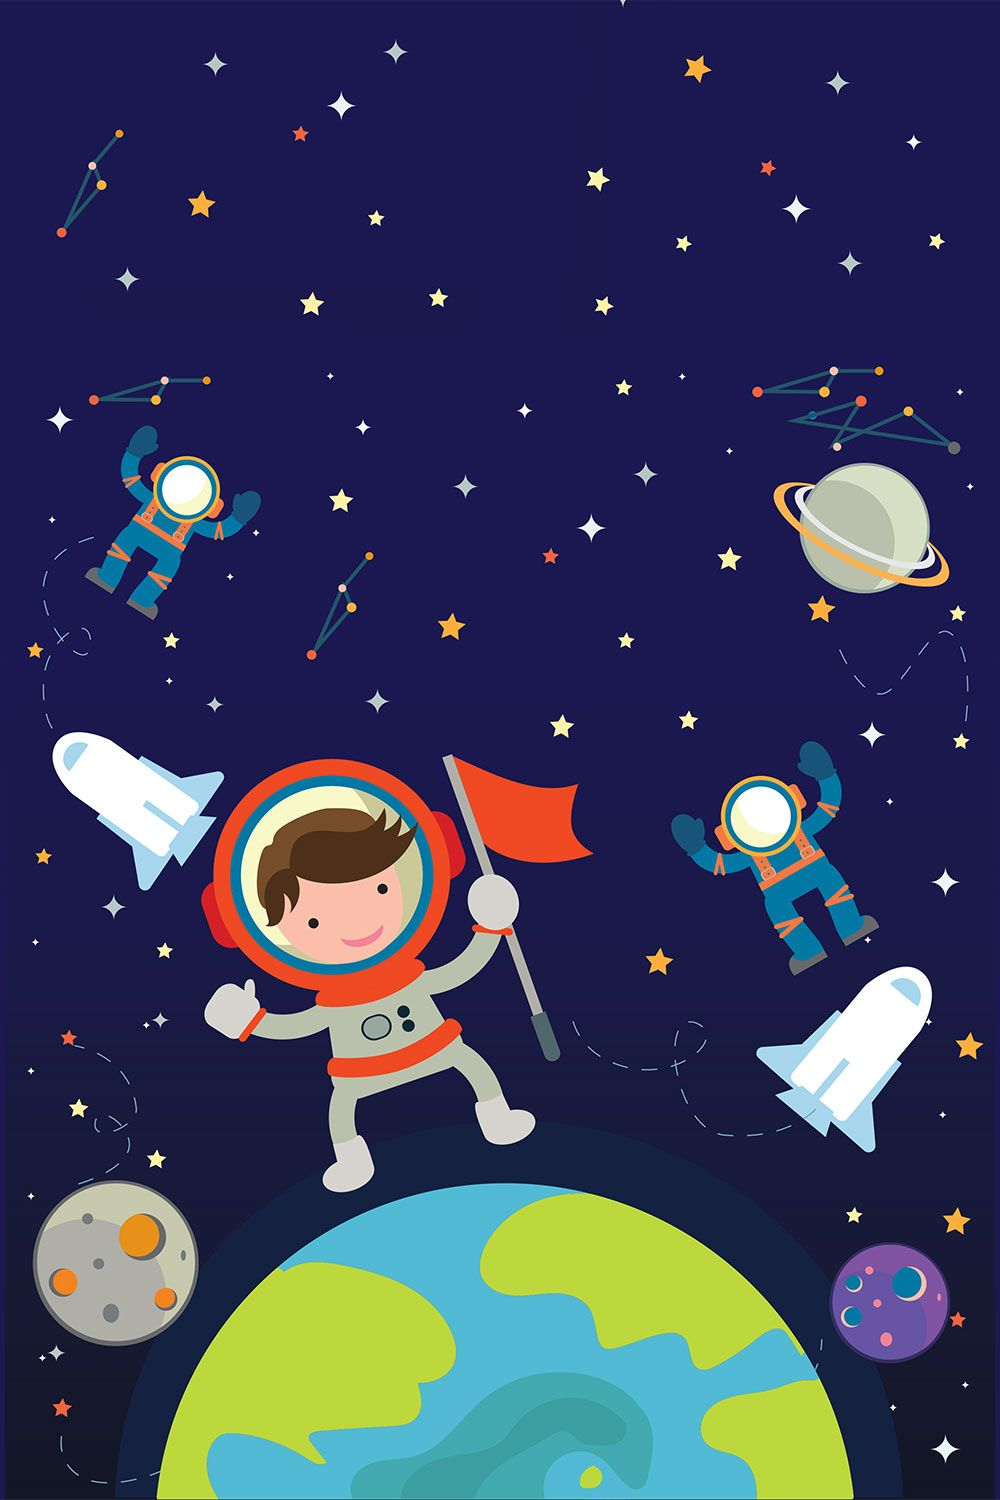 Order Kids Space Wallpaper to create fantastic wall decor